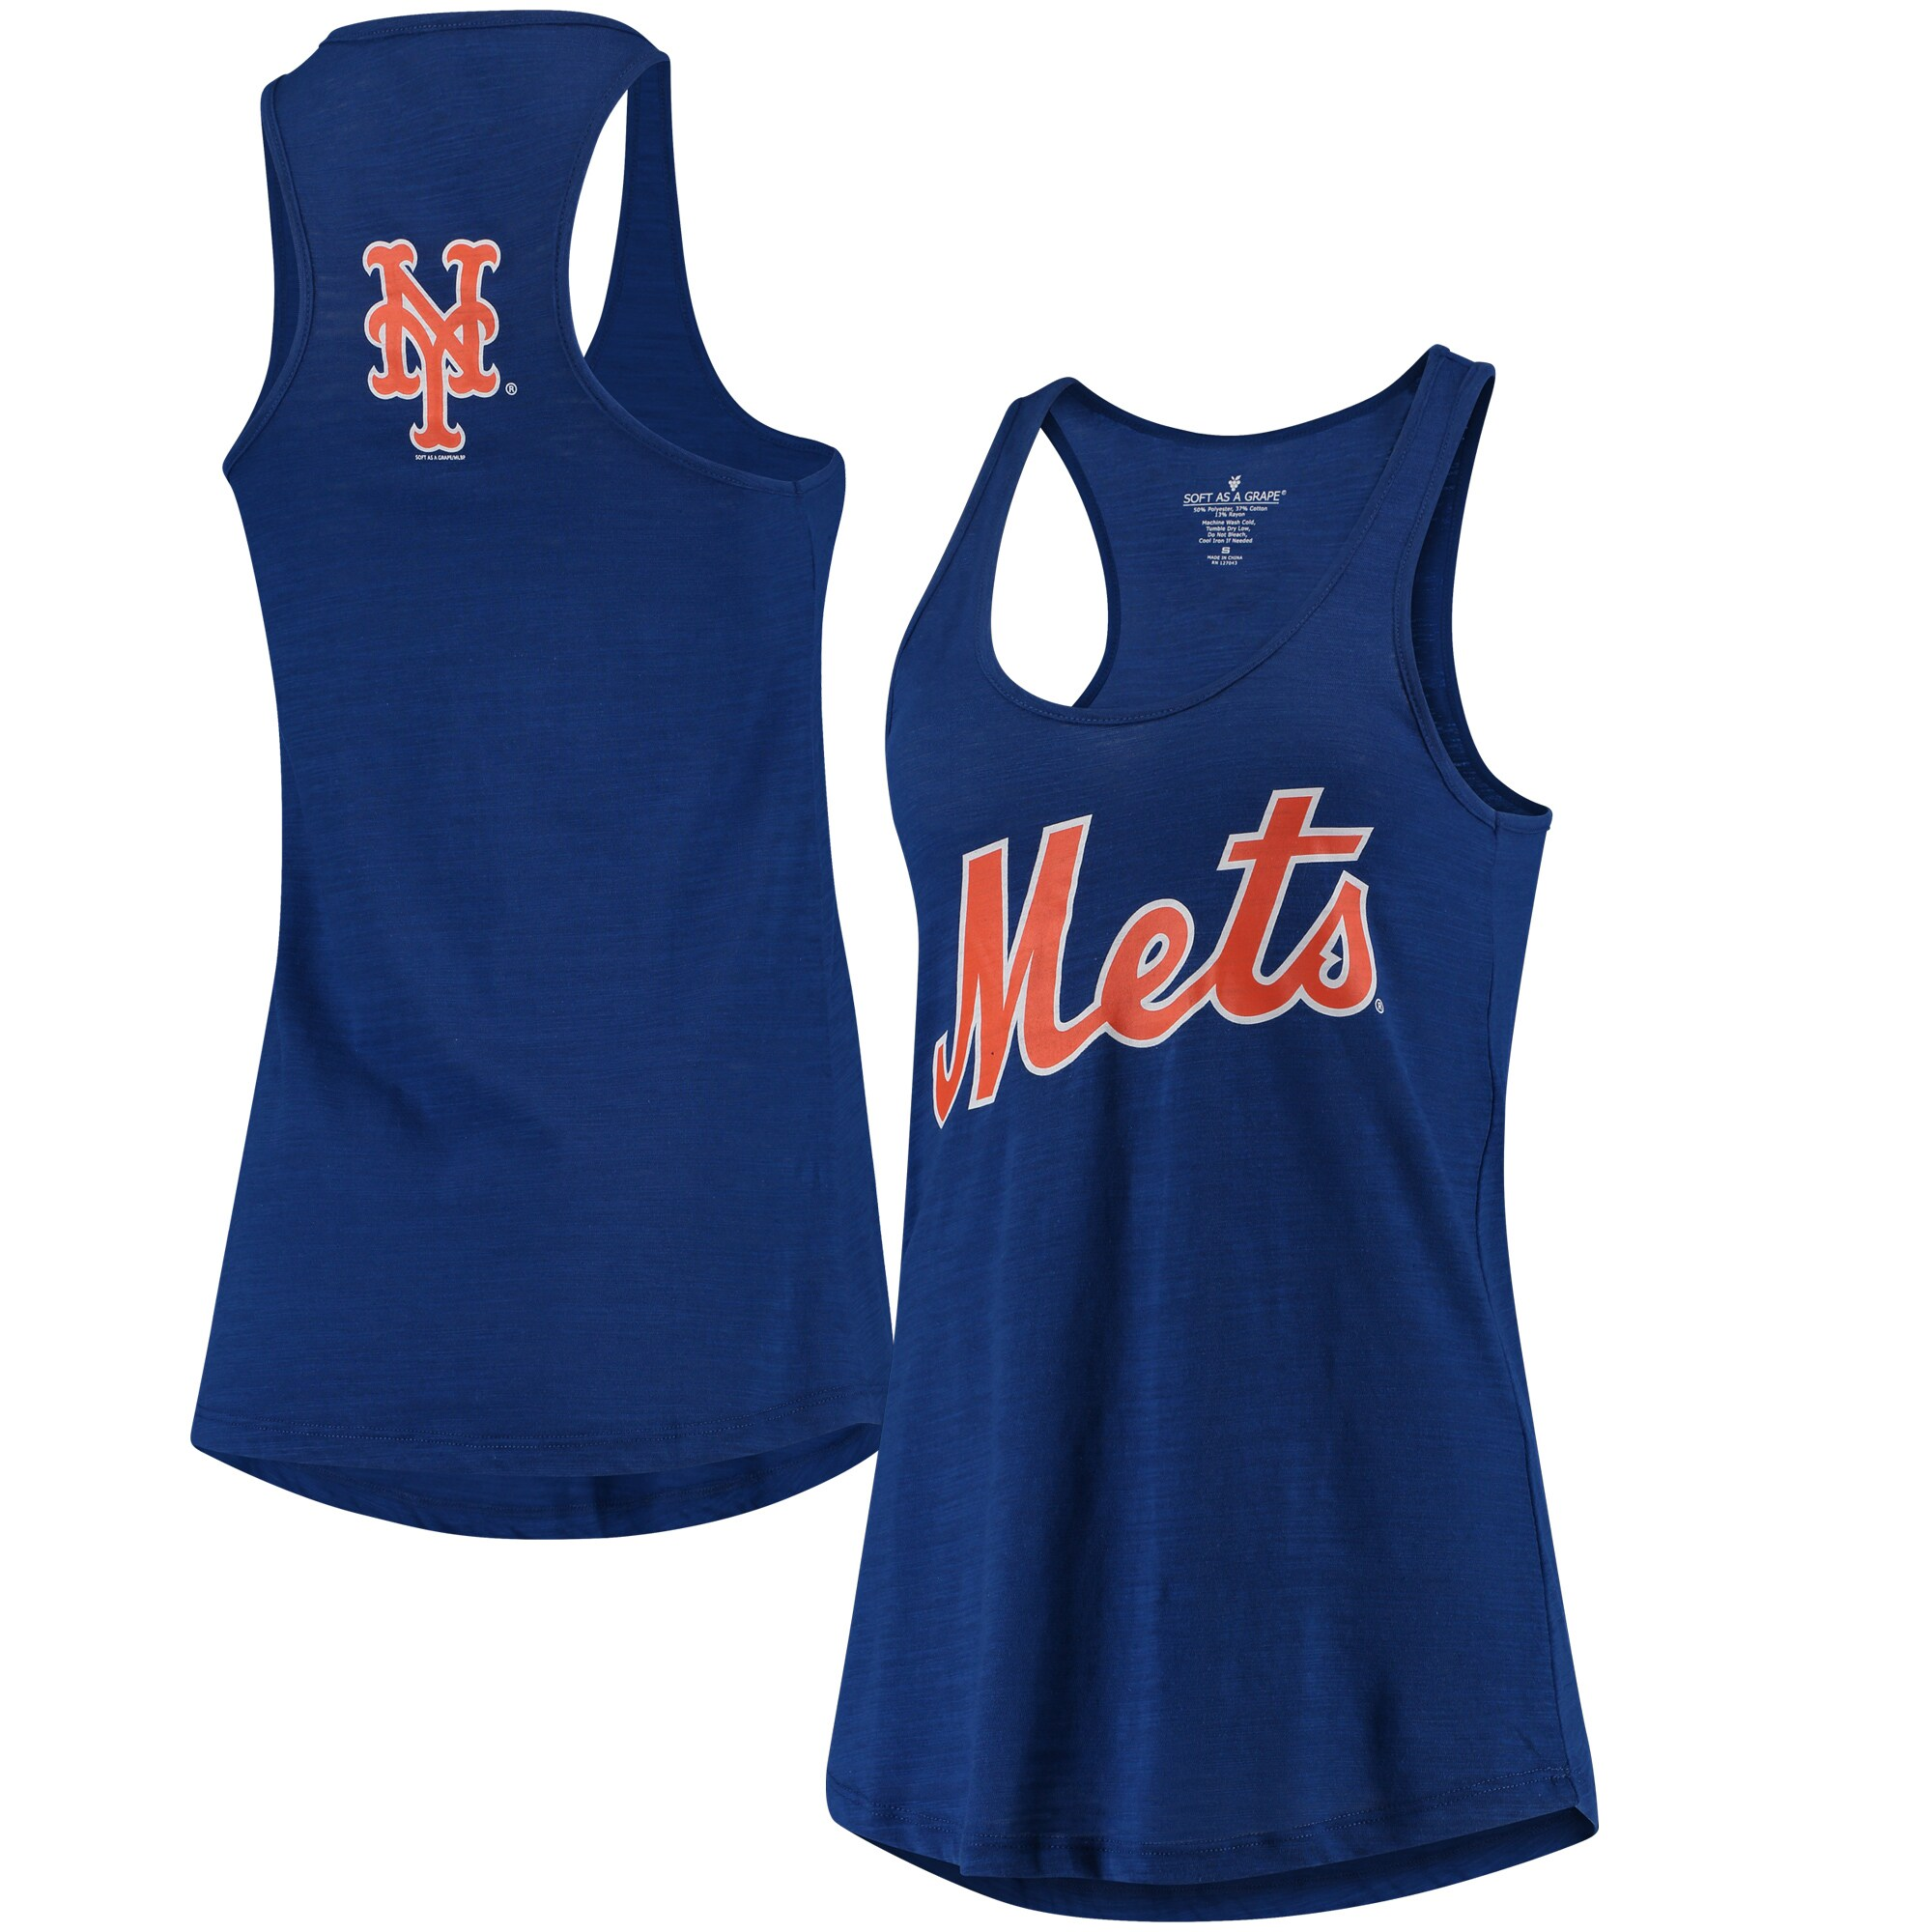 New York Mets Soft As A Grape Women's Front & Back Tri-Blend Racerback Tank Top - Royal